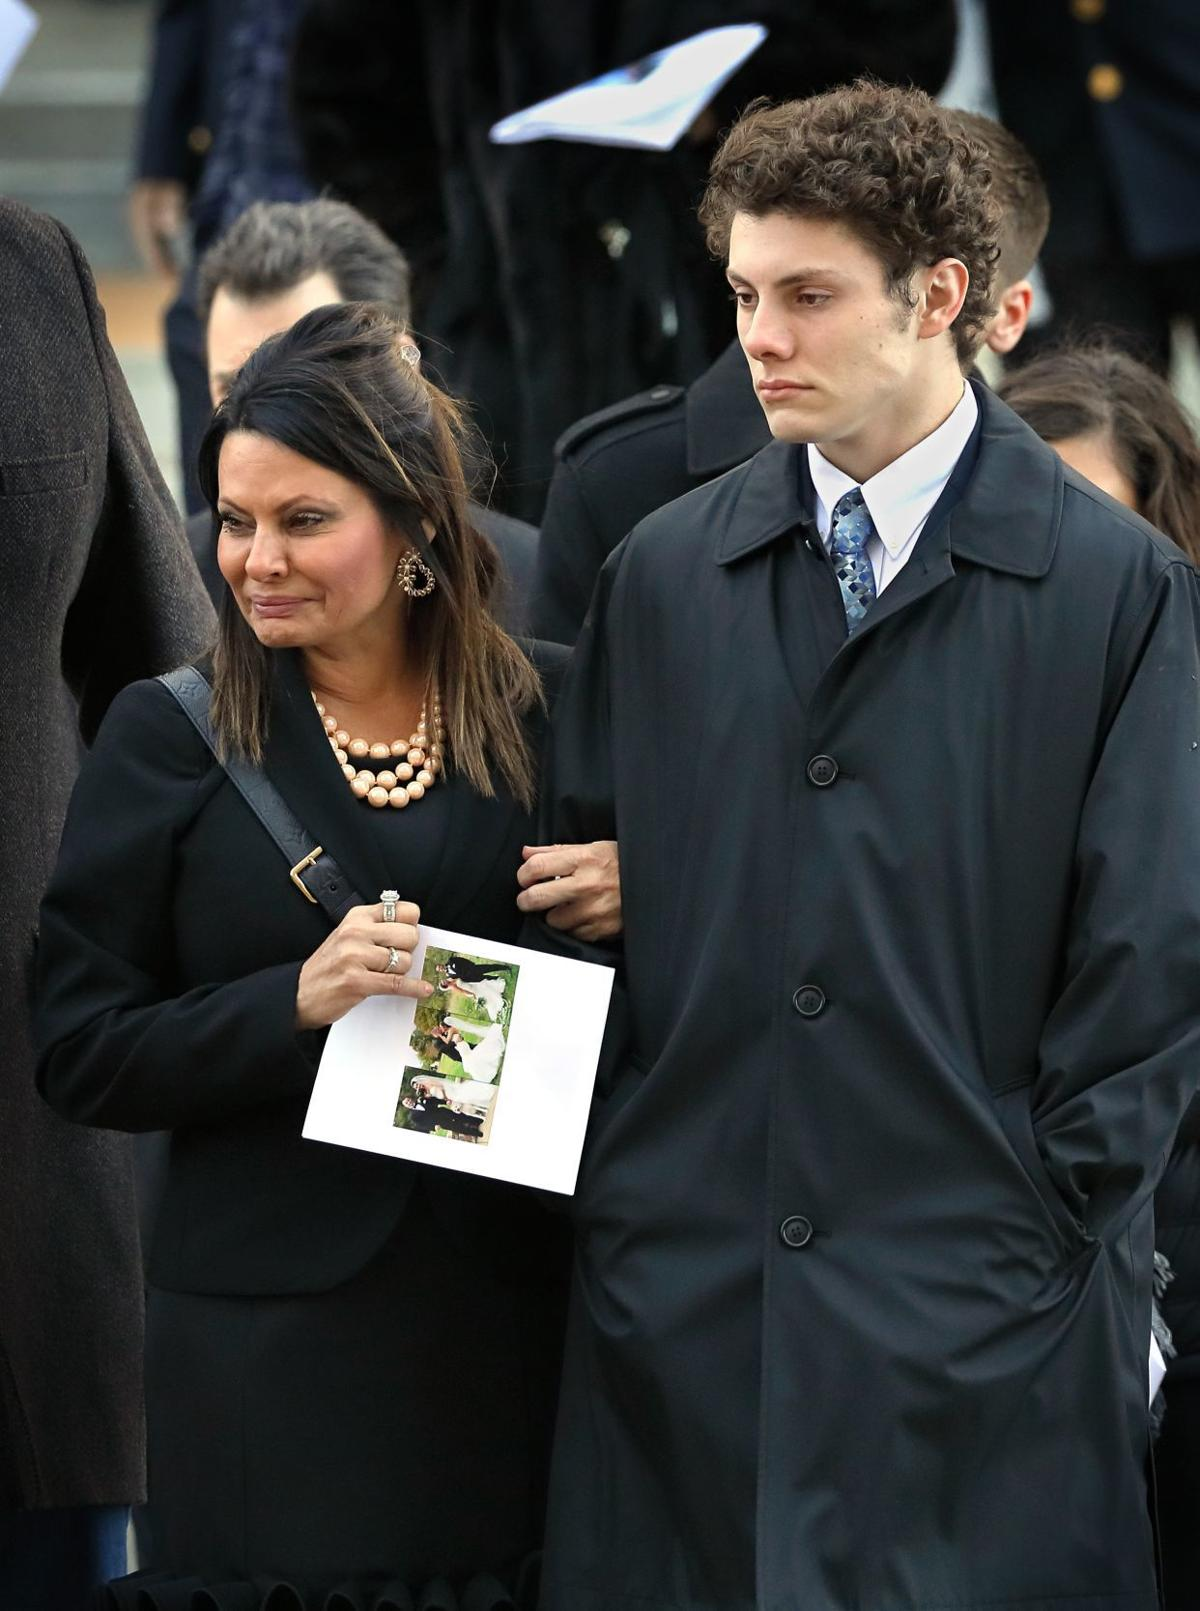 Funeral for St. Louis Police Officer Katlyn Alix